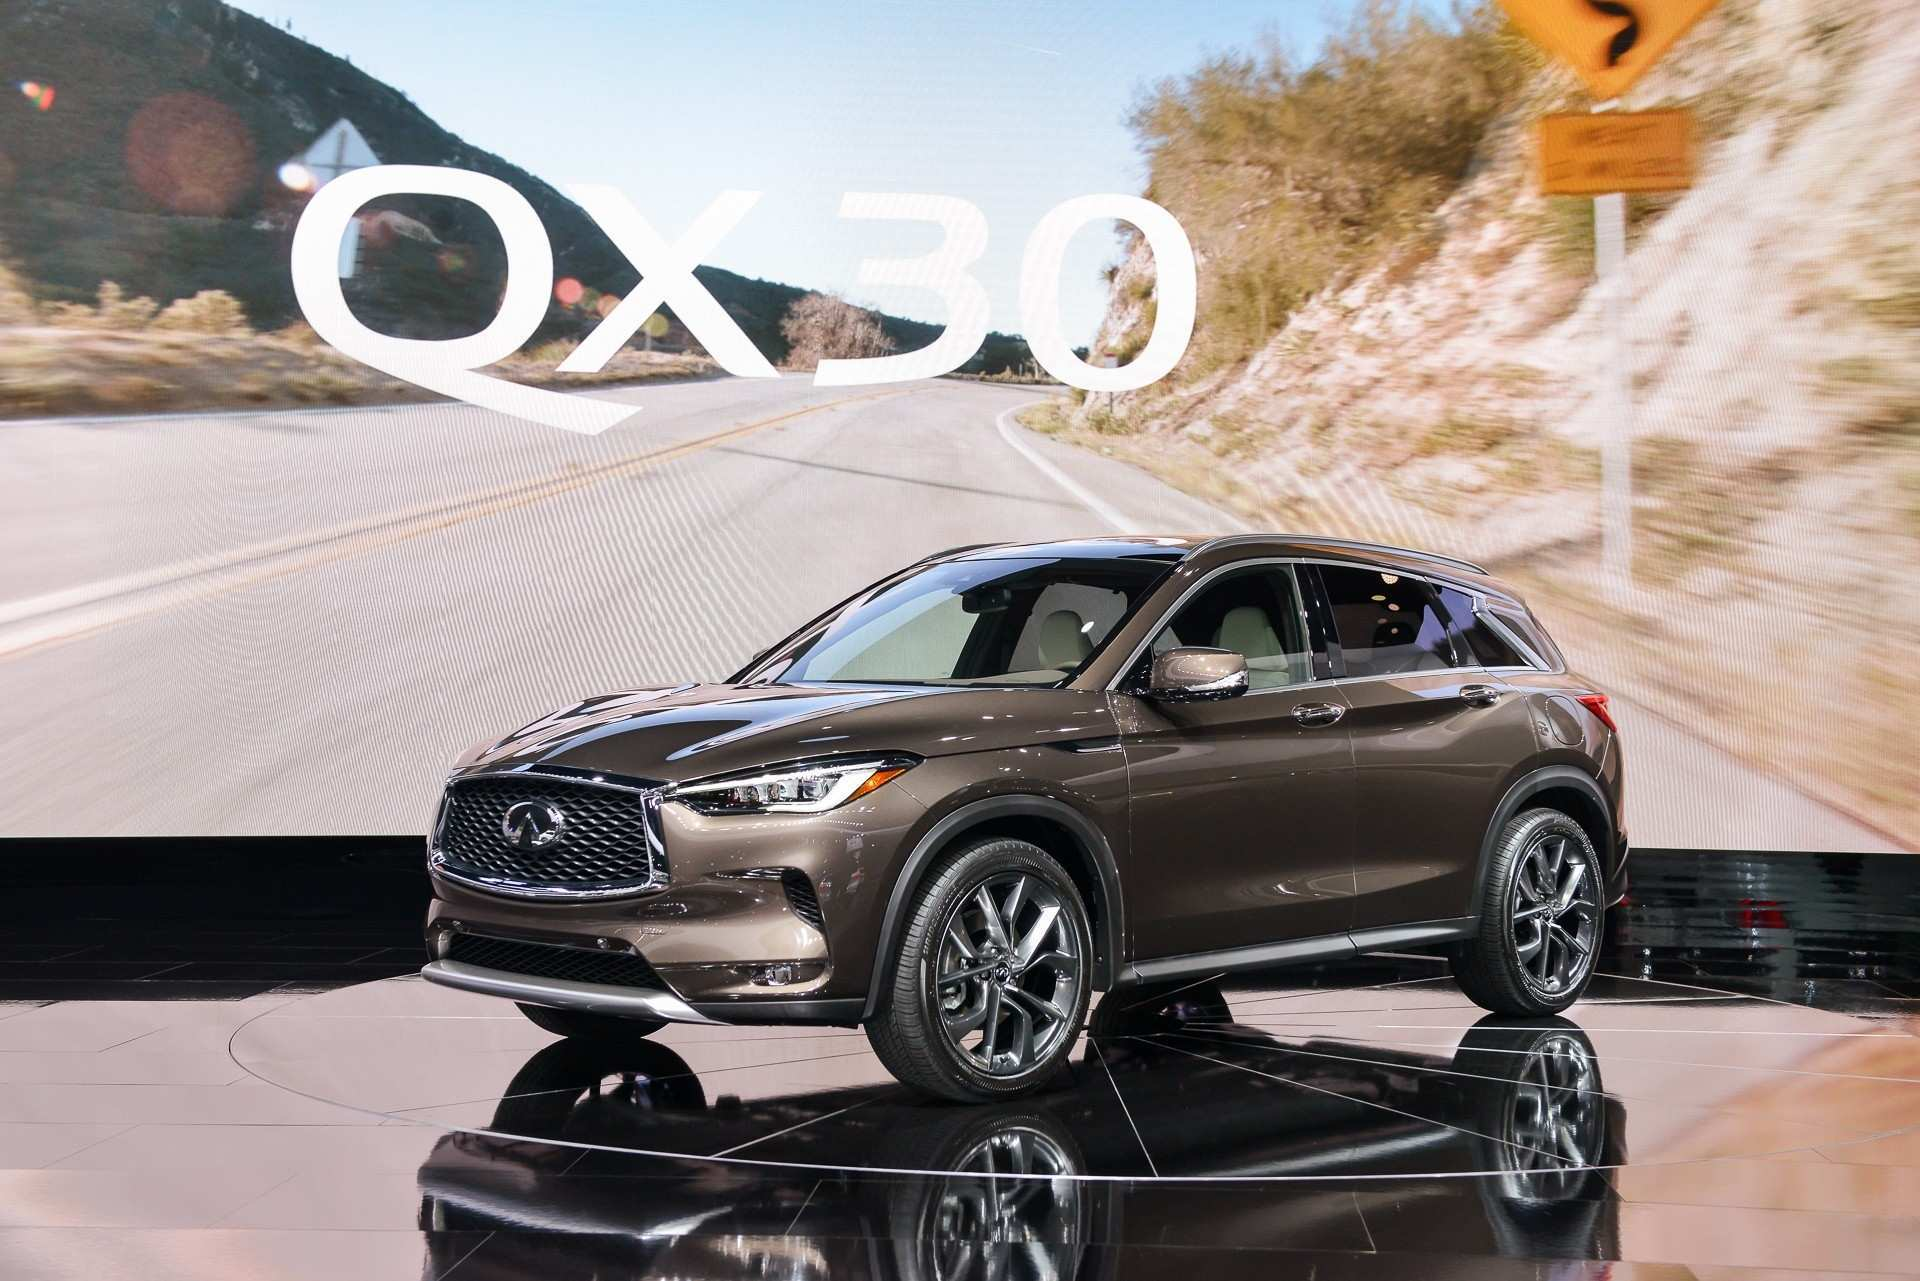 91 All New Infiniti New Models 2019 Concept Redesign And Review Release for Infiniti New Models 2019 Concept Redesign And Review